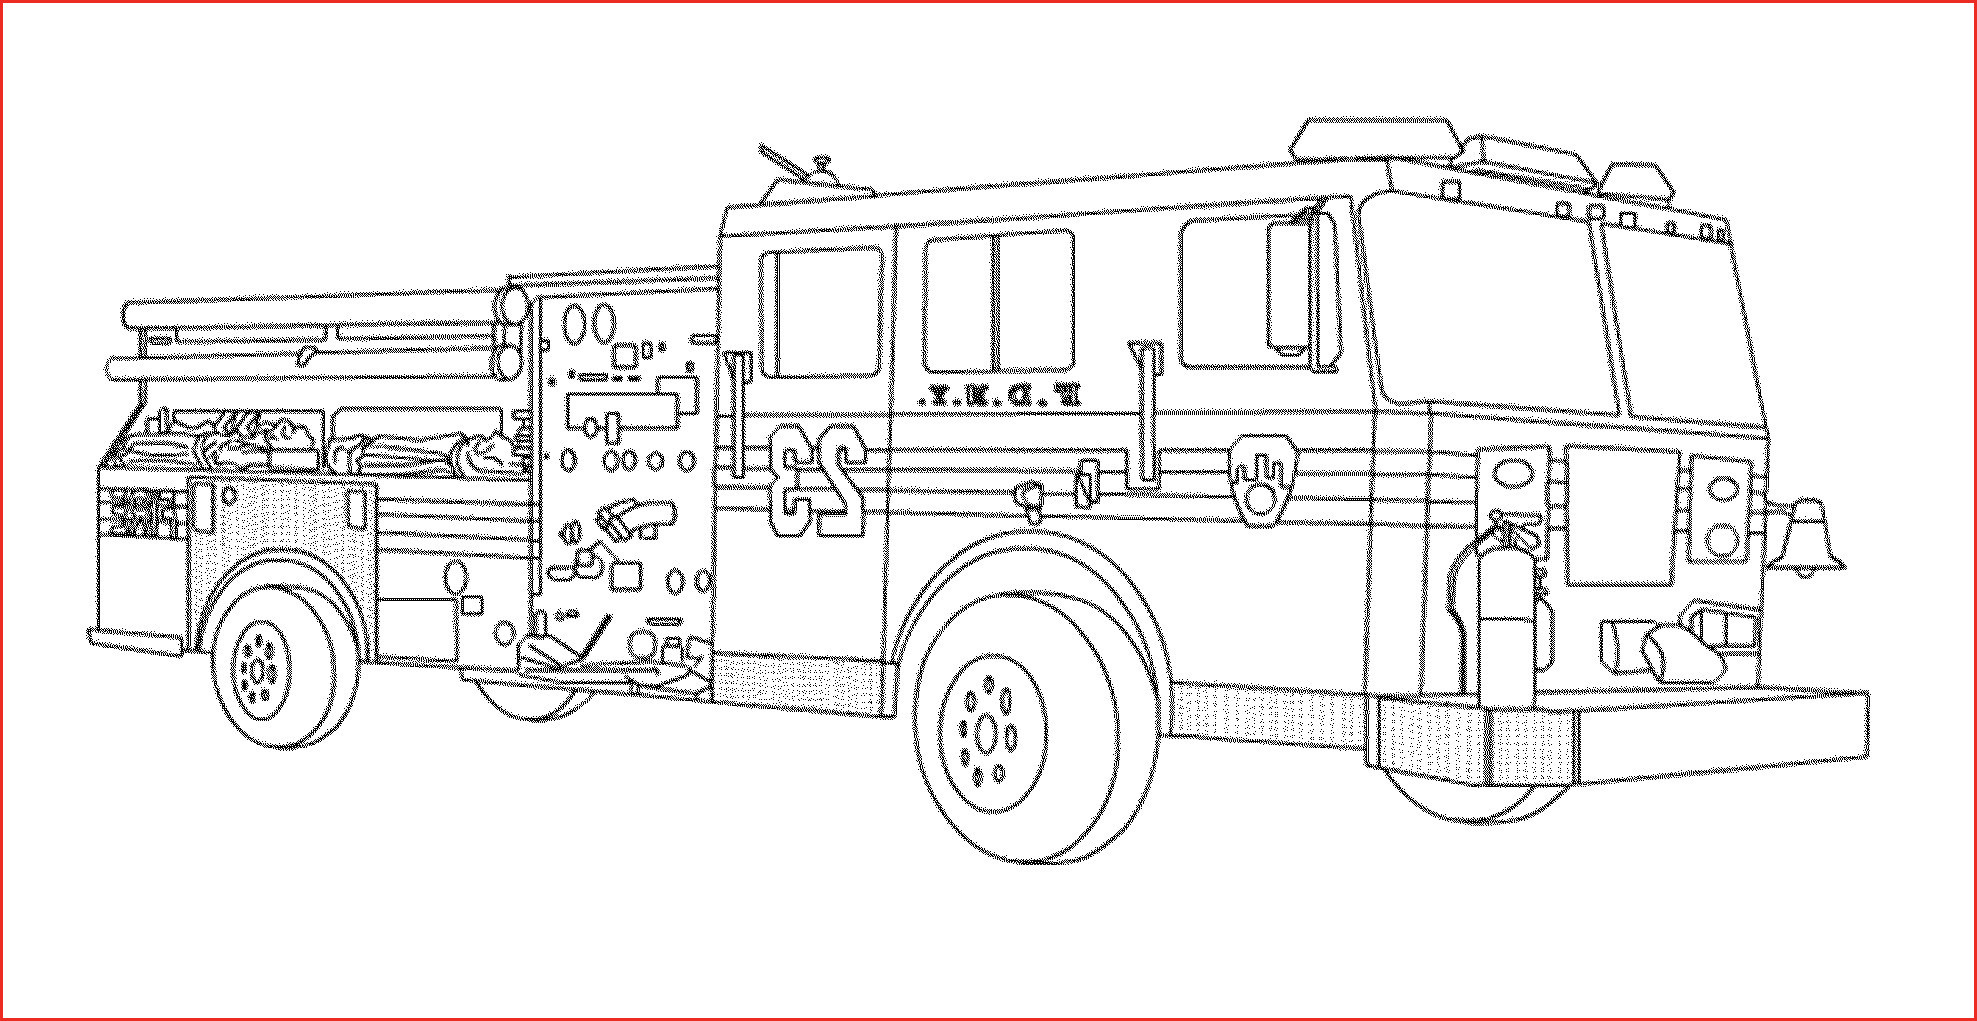 Free Fire Truck Coloring Pages Printable  Gallery 14s - To print for your project